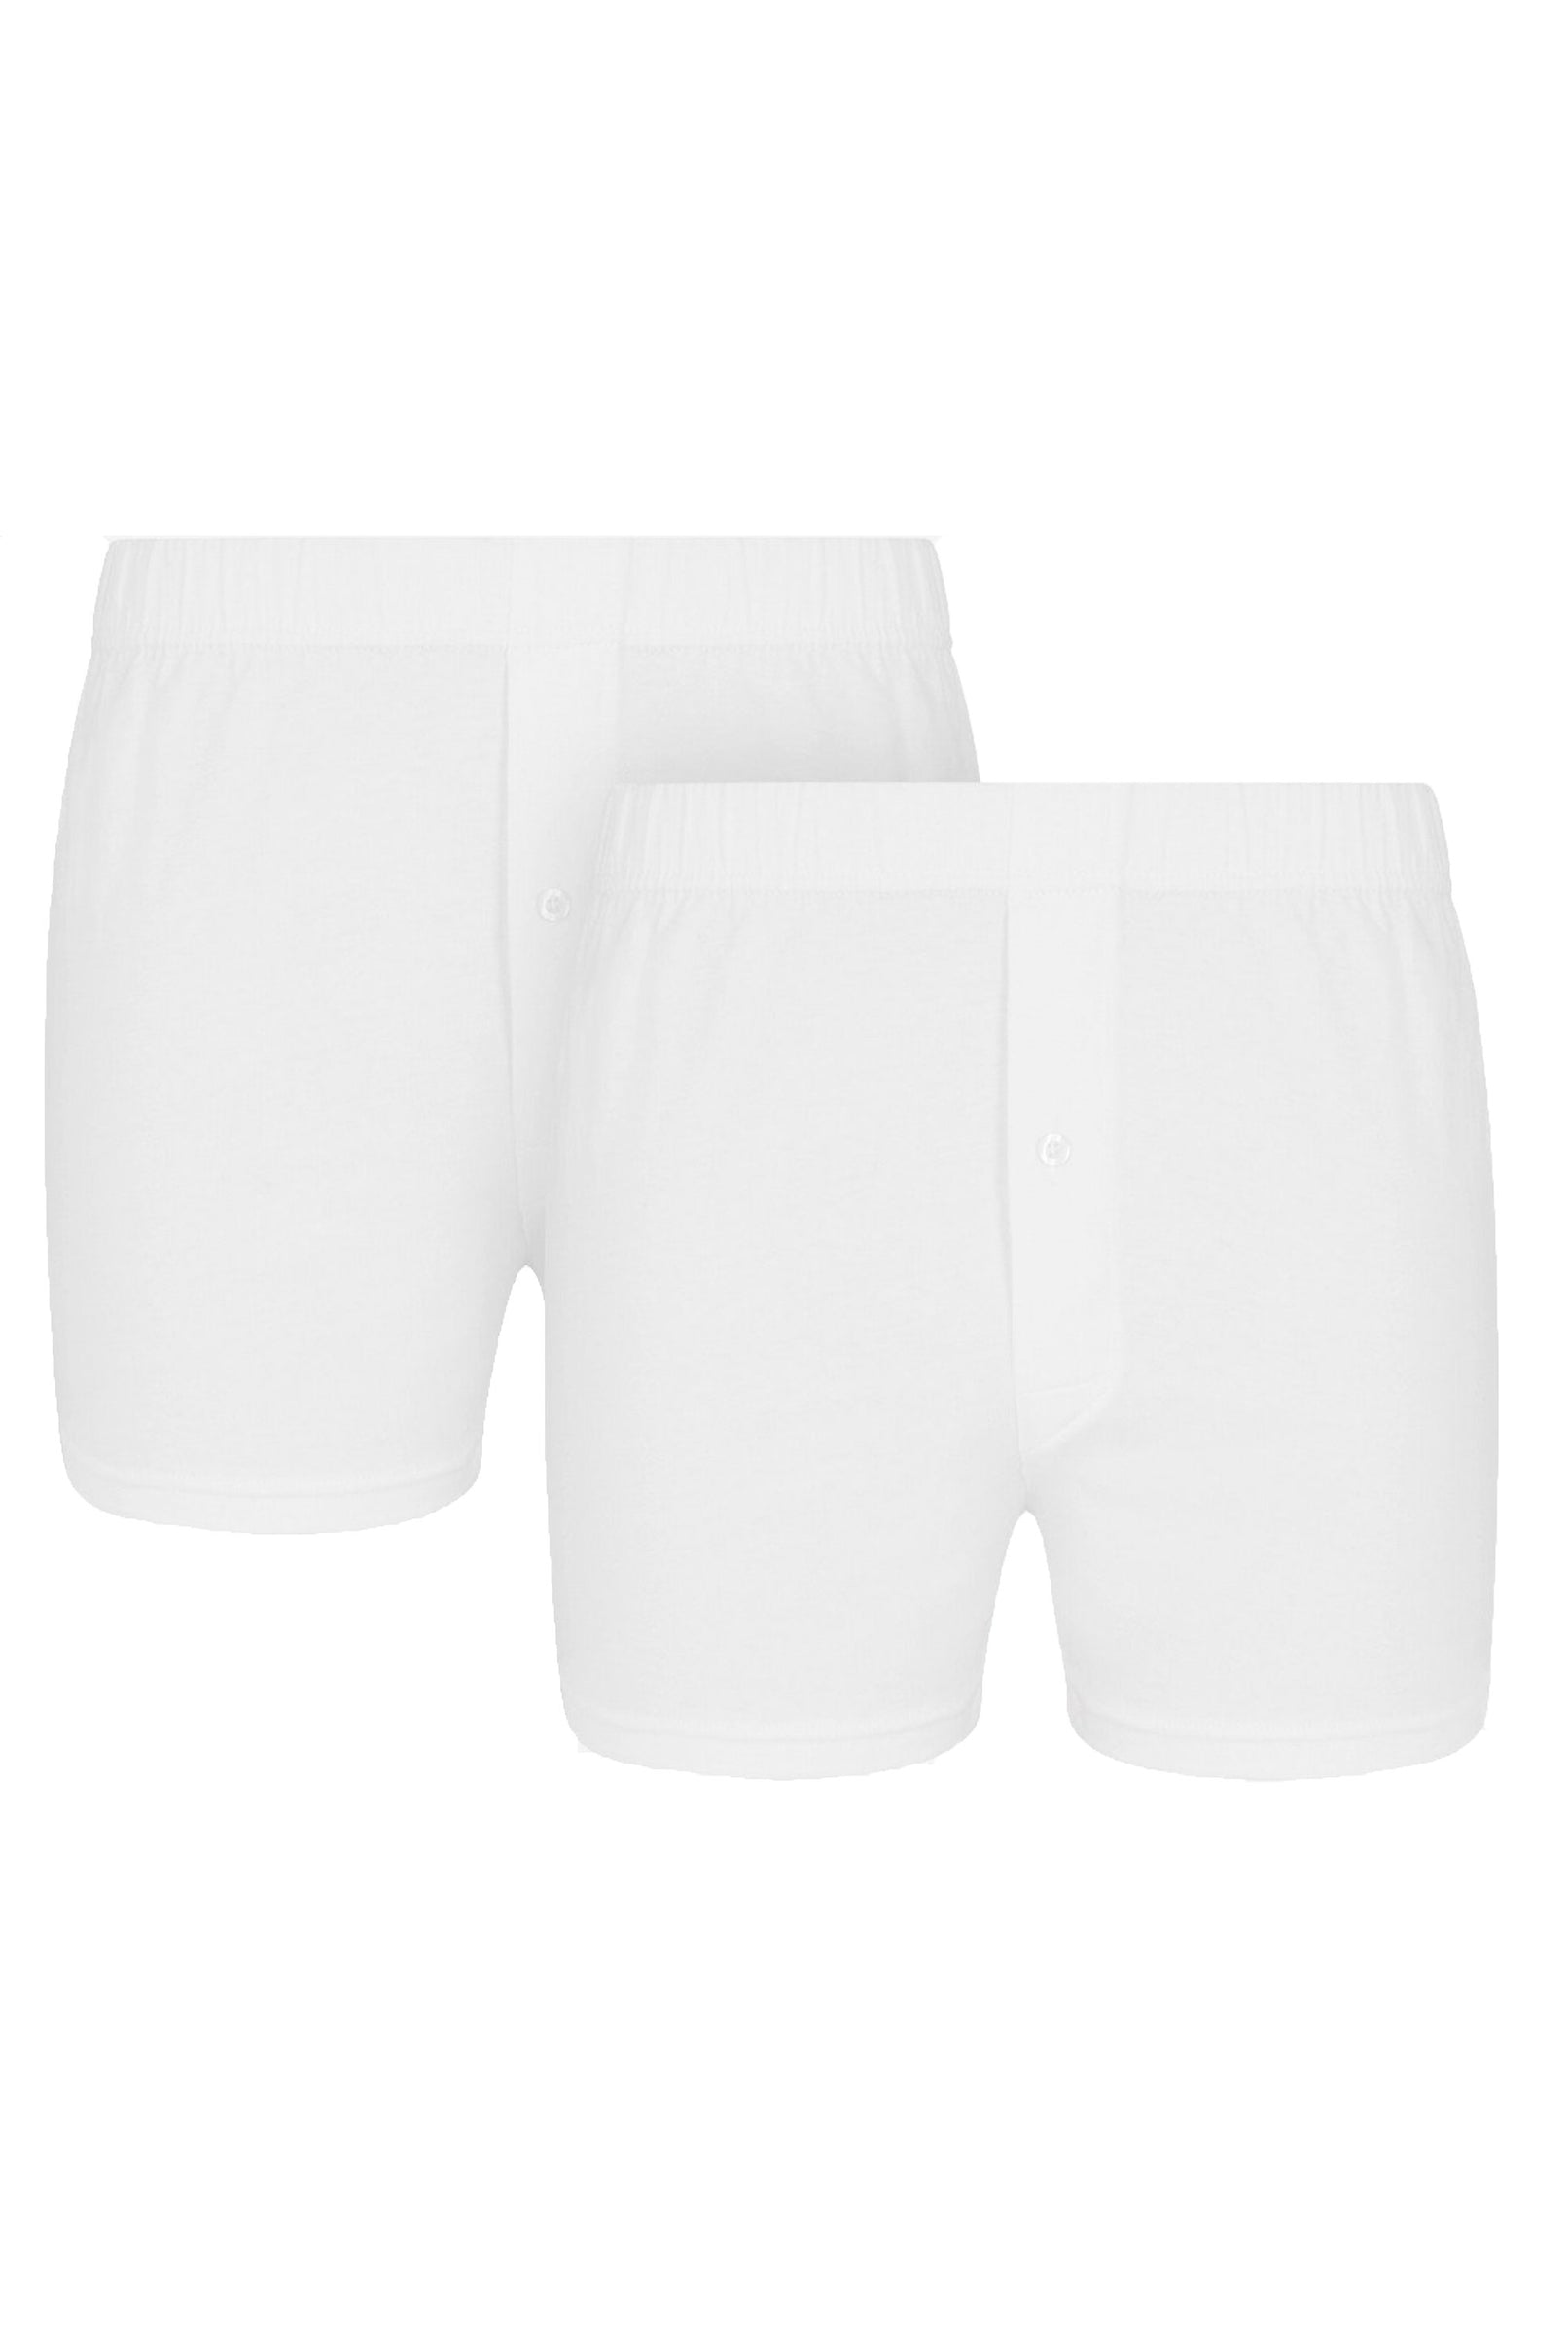 White Jersey Boxer Short [Twin Pack]